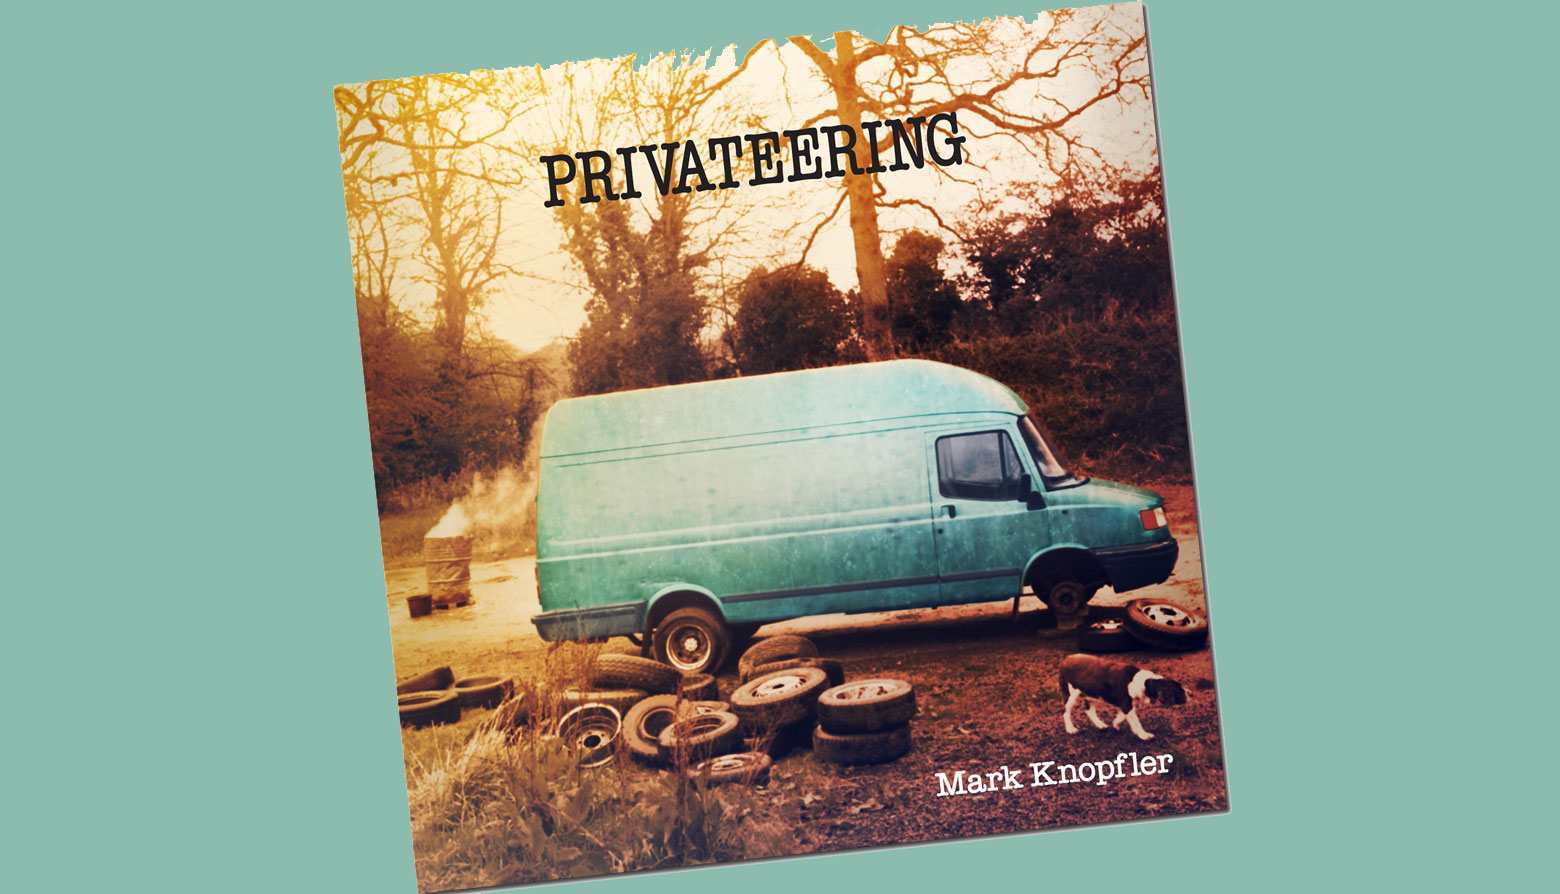 Mark-Knopfler-Privateering1